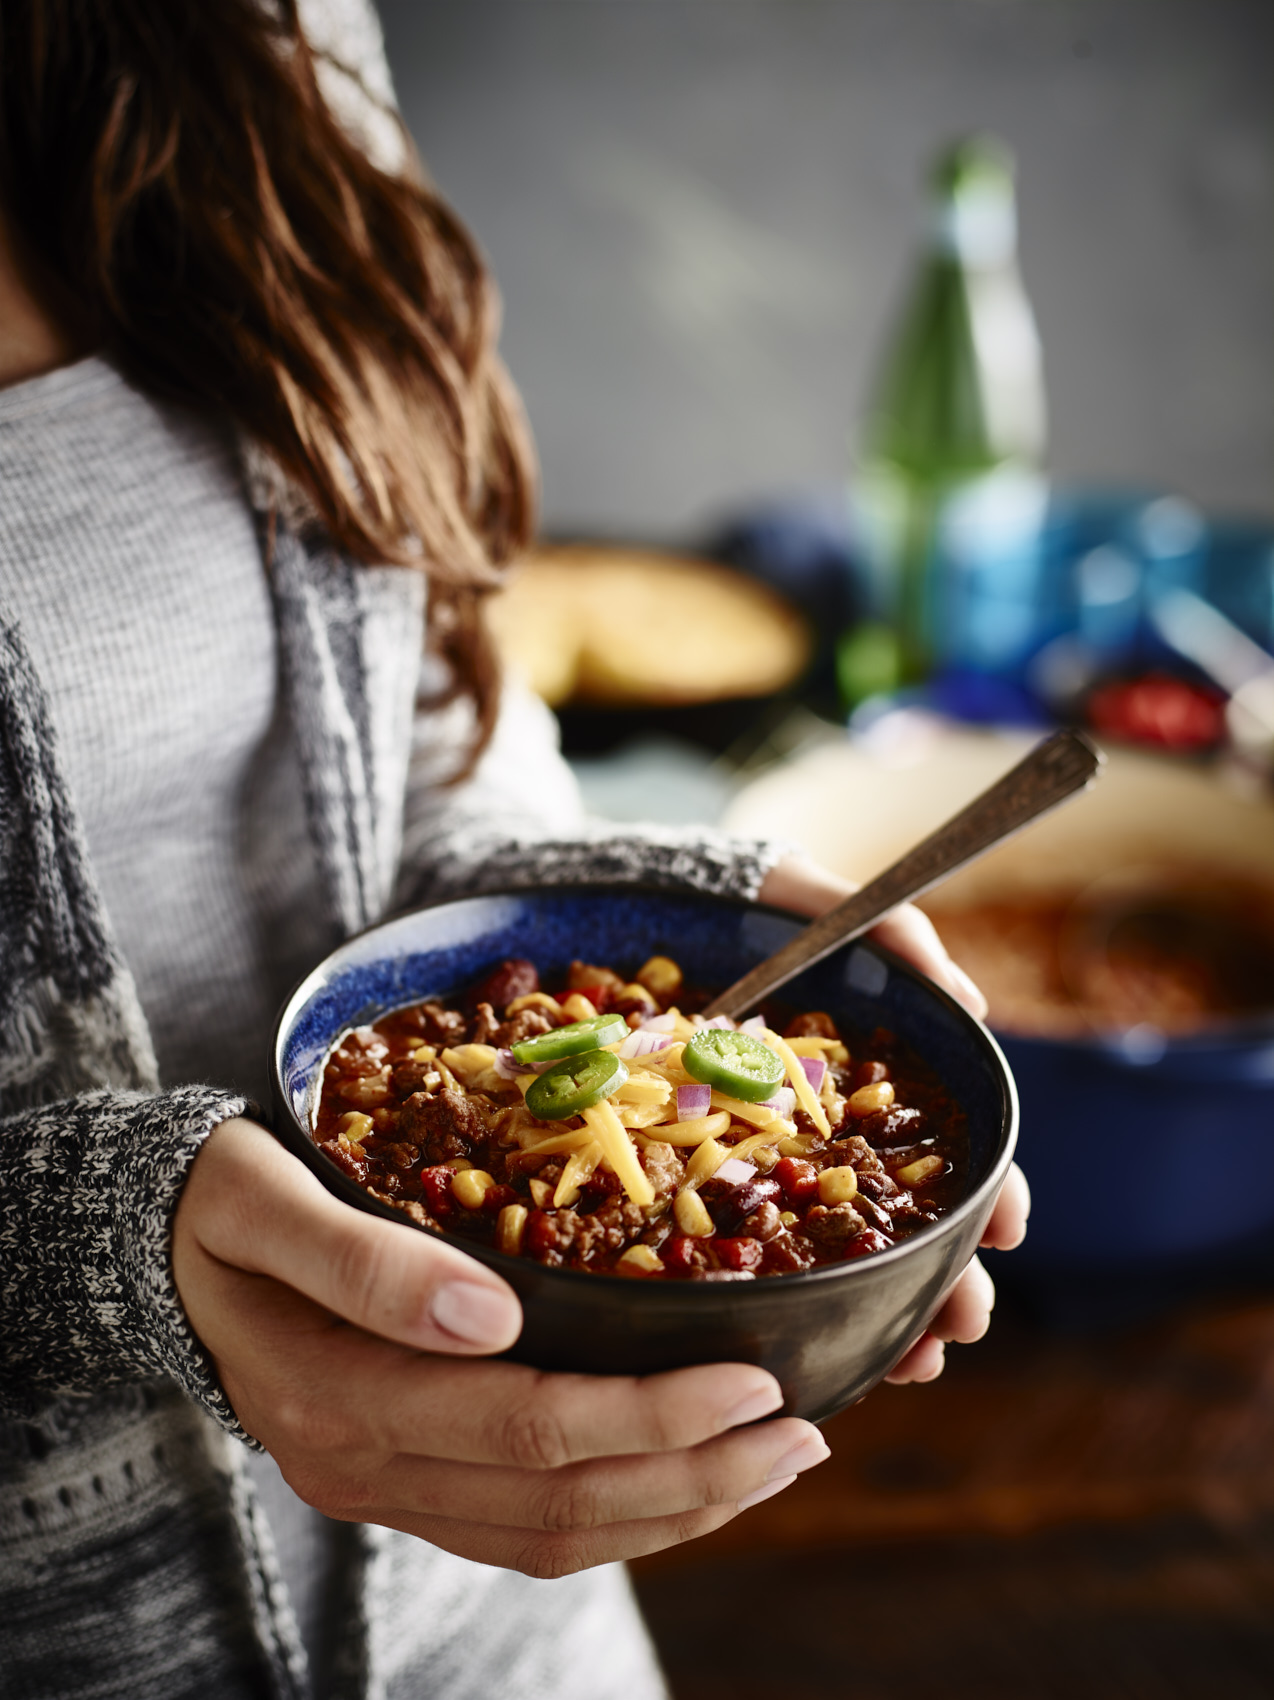 Publix_GatherShare_Chili_17540